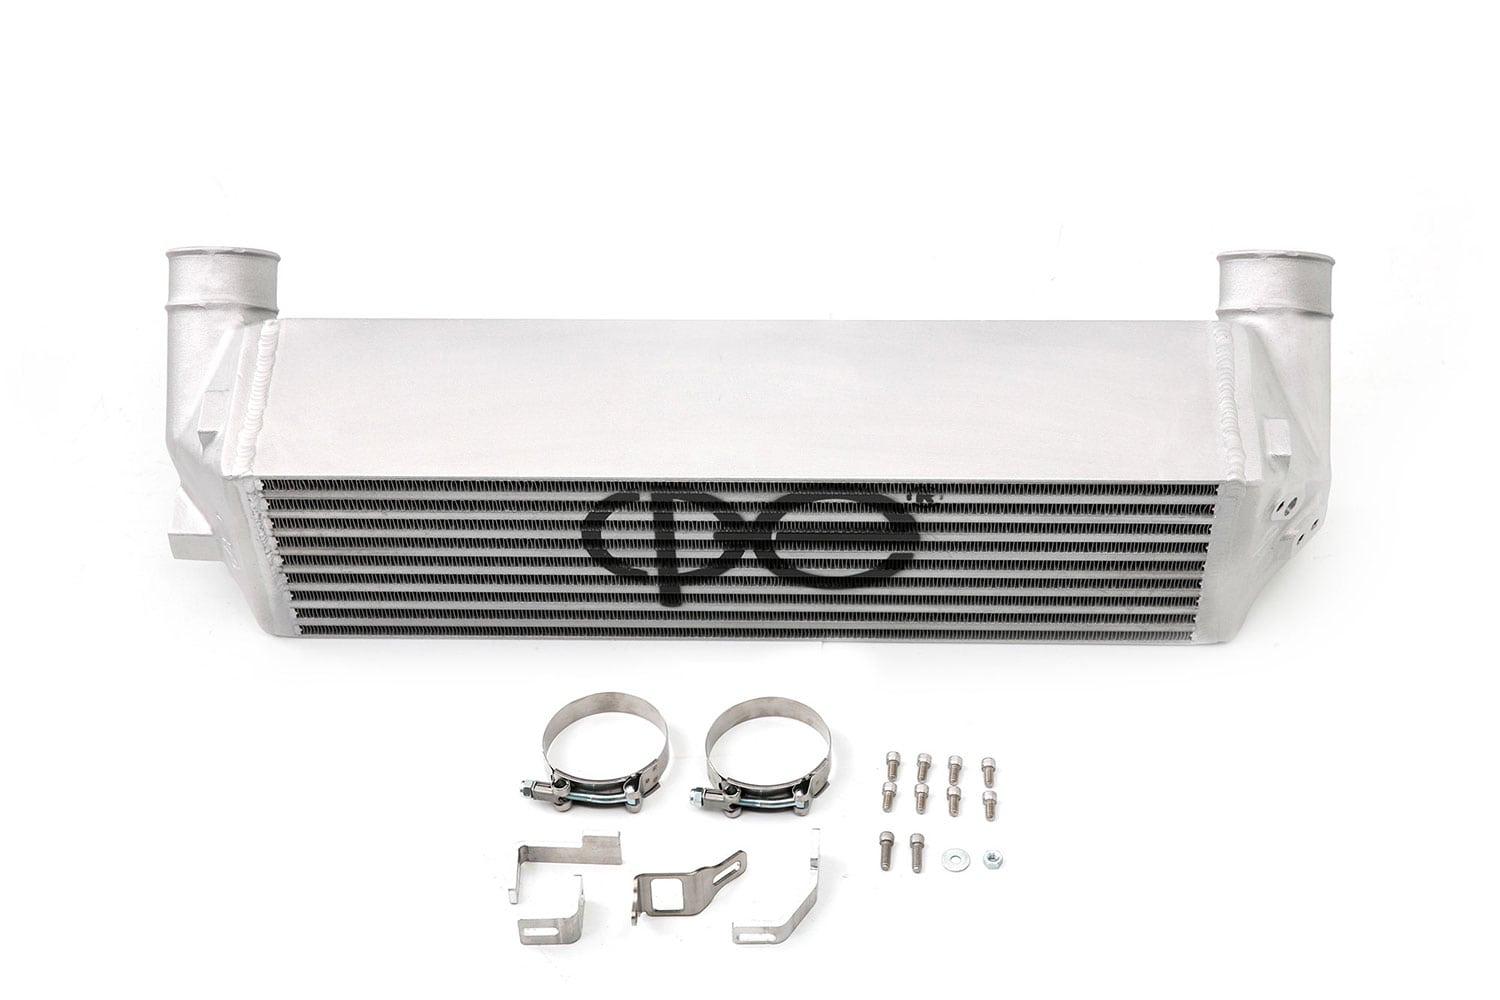 cp e Δcore ford mustang ecoboost fmic front mount intercooler cp e